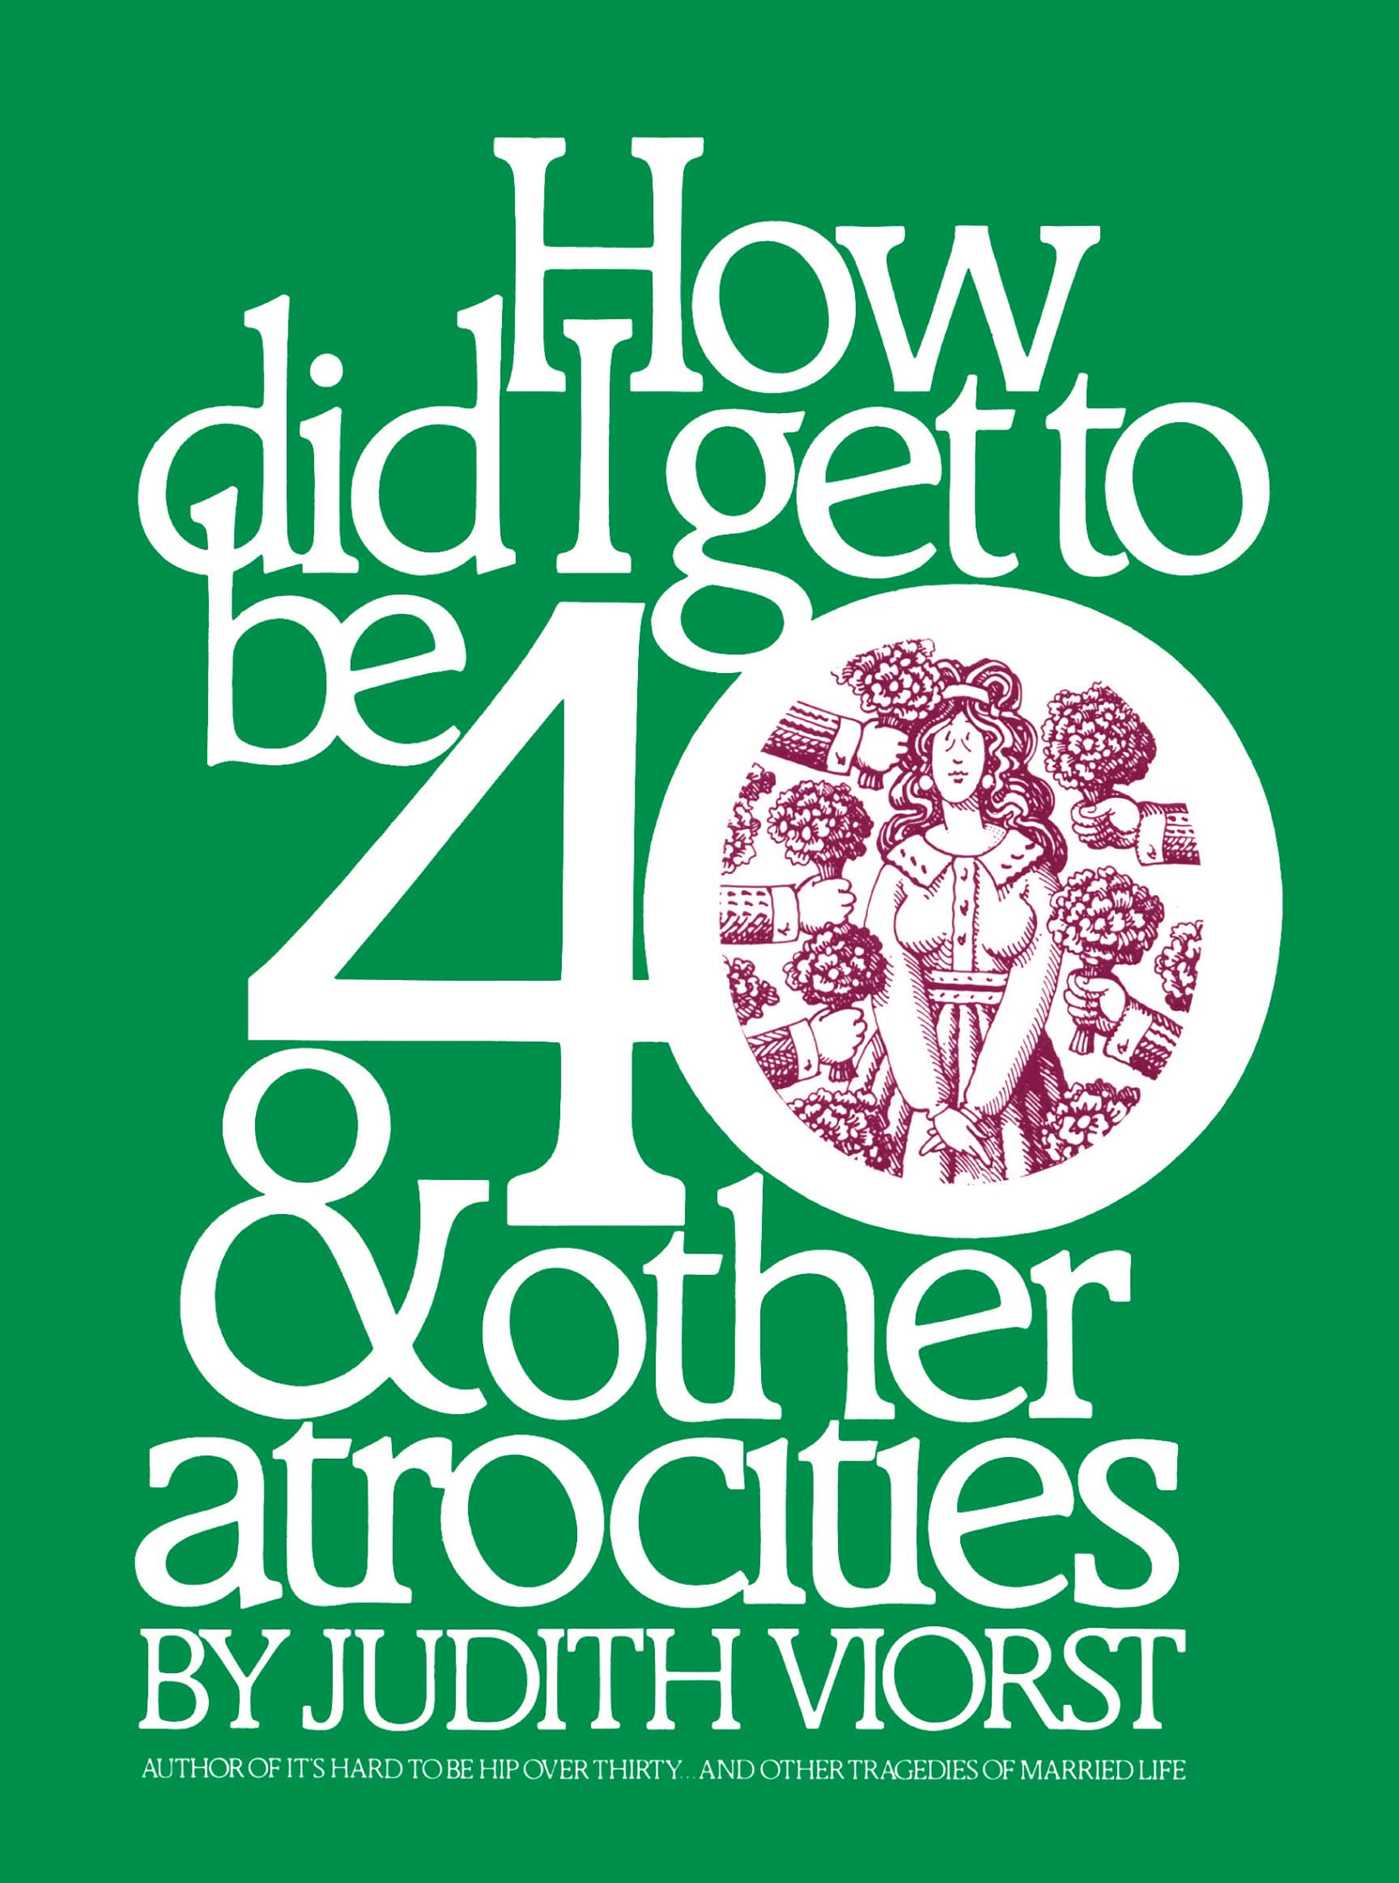 How-did-i-get-to-be-40-other-atrocities-9781476702704_hr